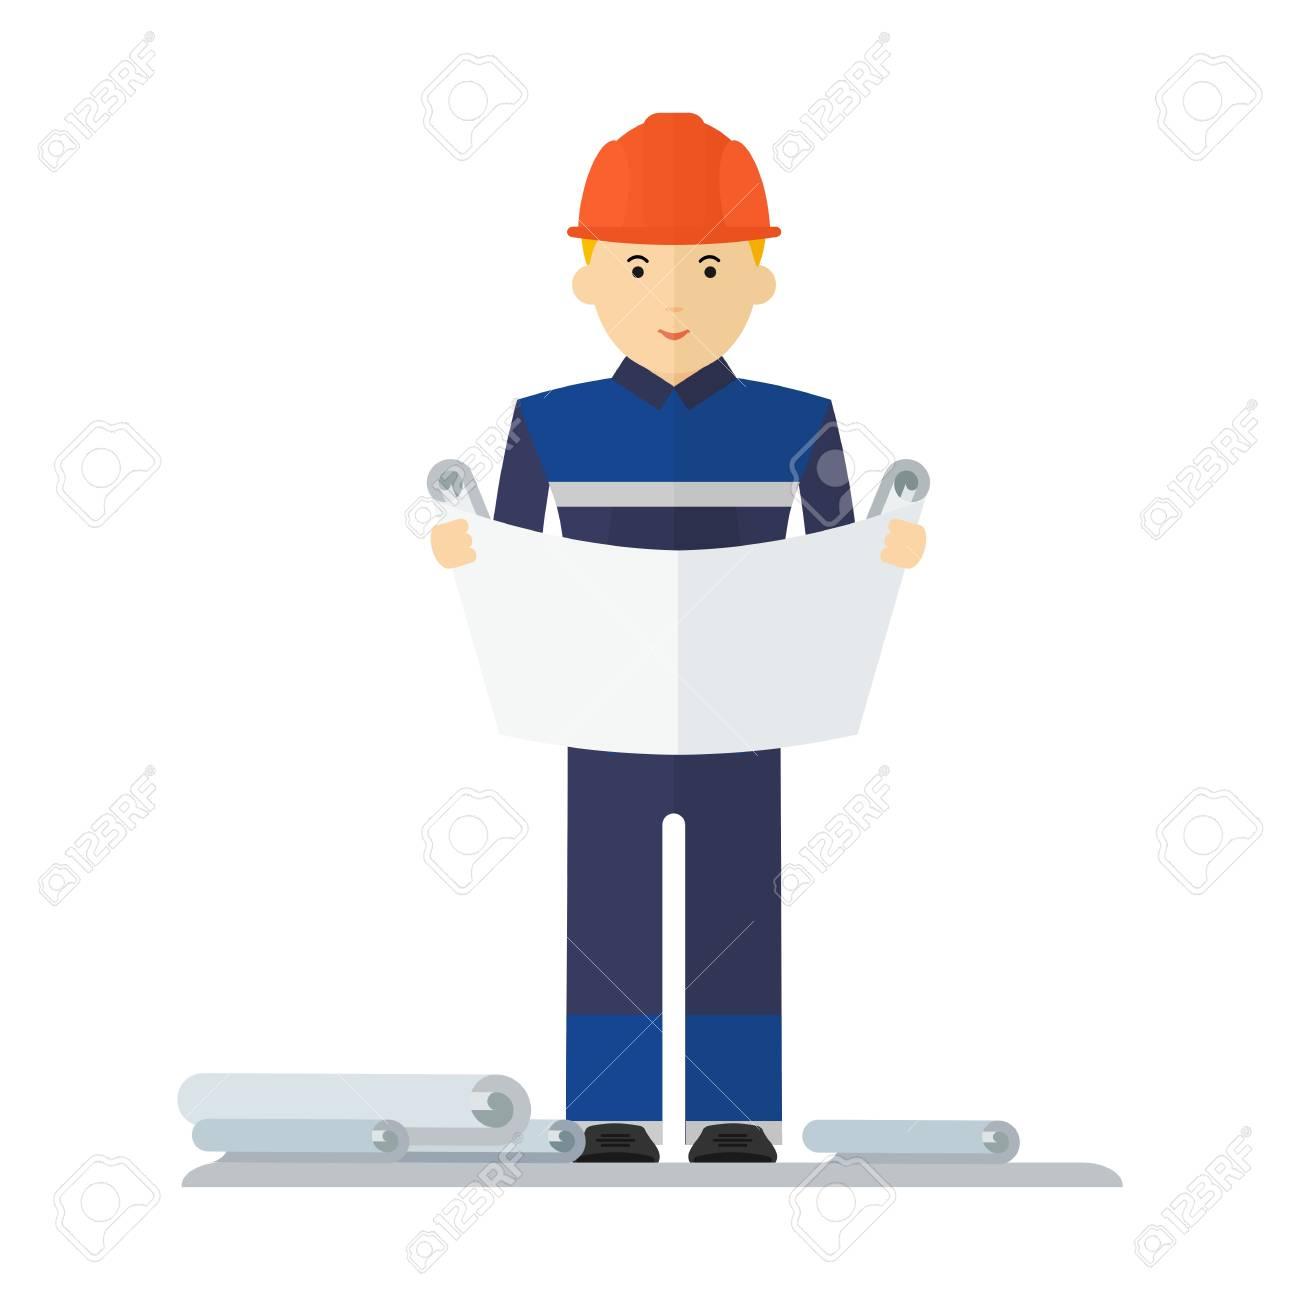 Engineer Character Construction Architect And Engineering Drawing